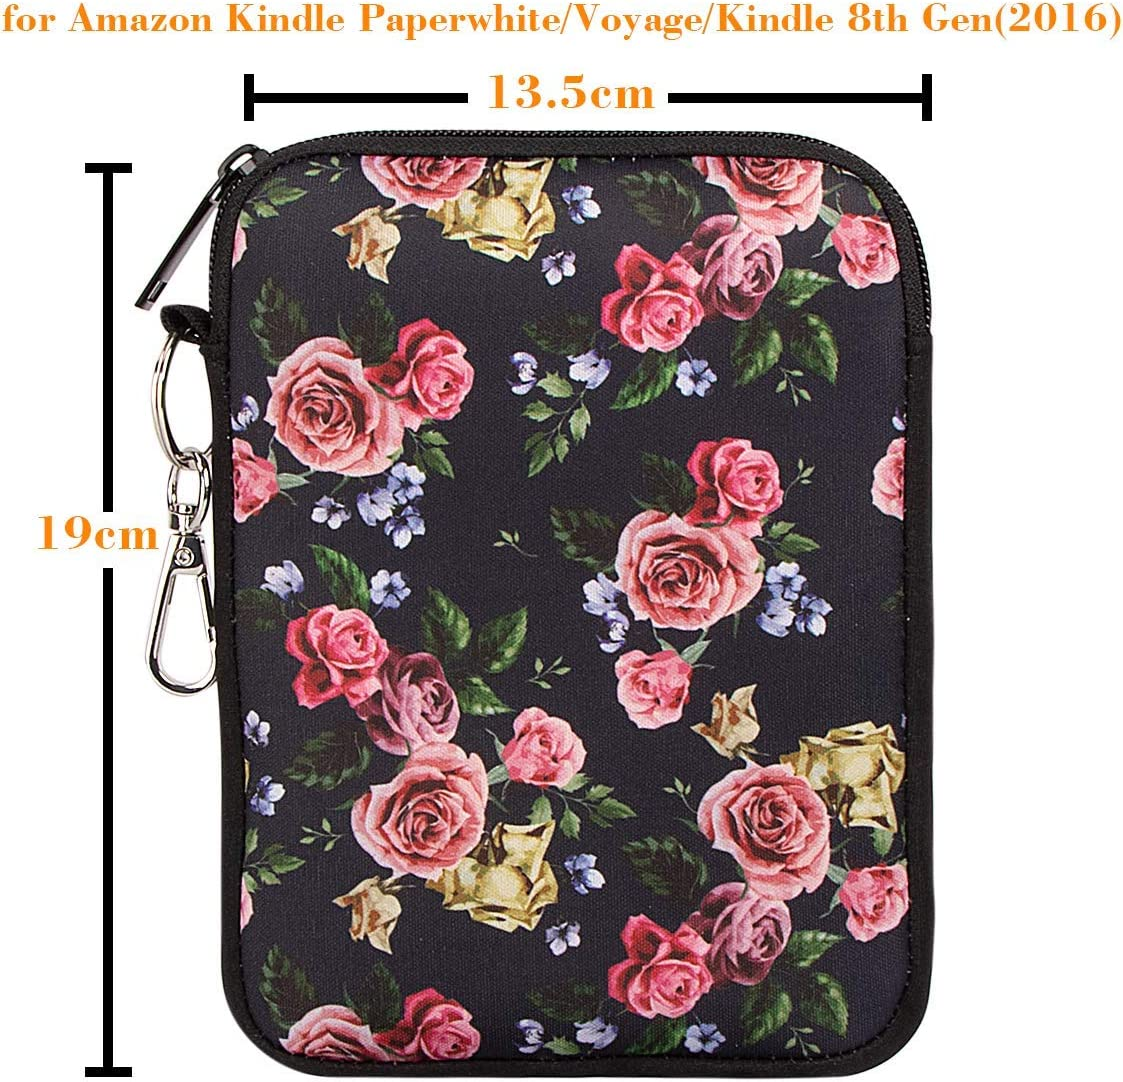 Neoprene Cover Pouch Bag for  Kindle Paperwhite//Kindle Voyage//Kindle 8th Generation // Kindle Oasis 6 E-Reader 2016 Sleeve for Kindle in 6 Inch